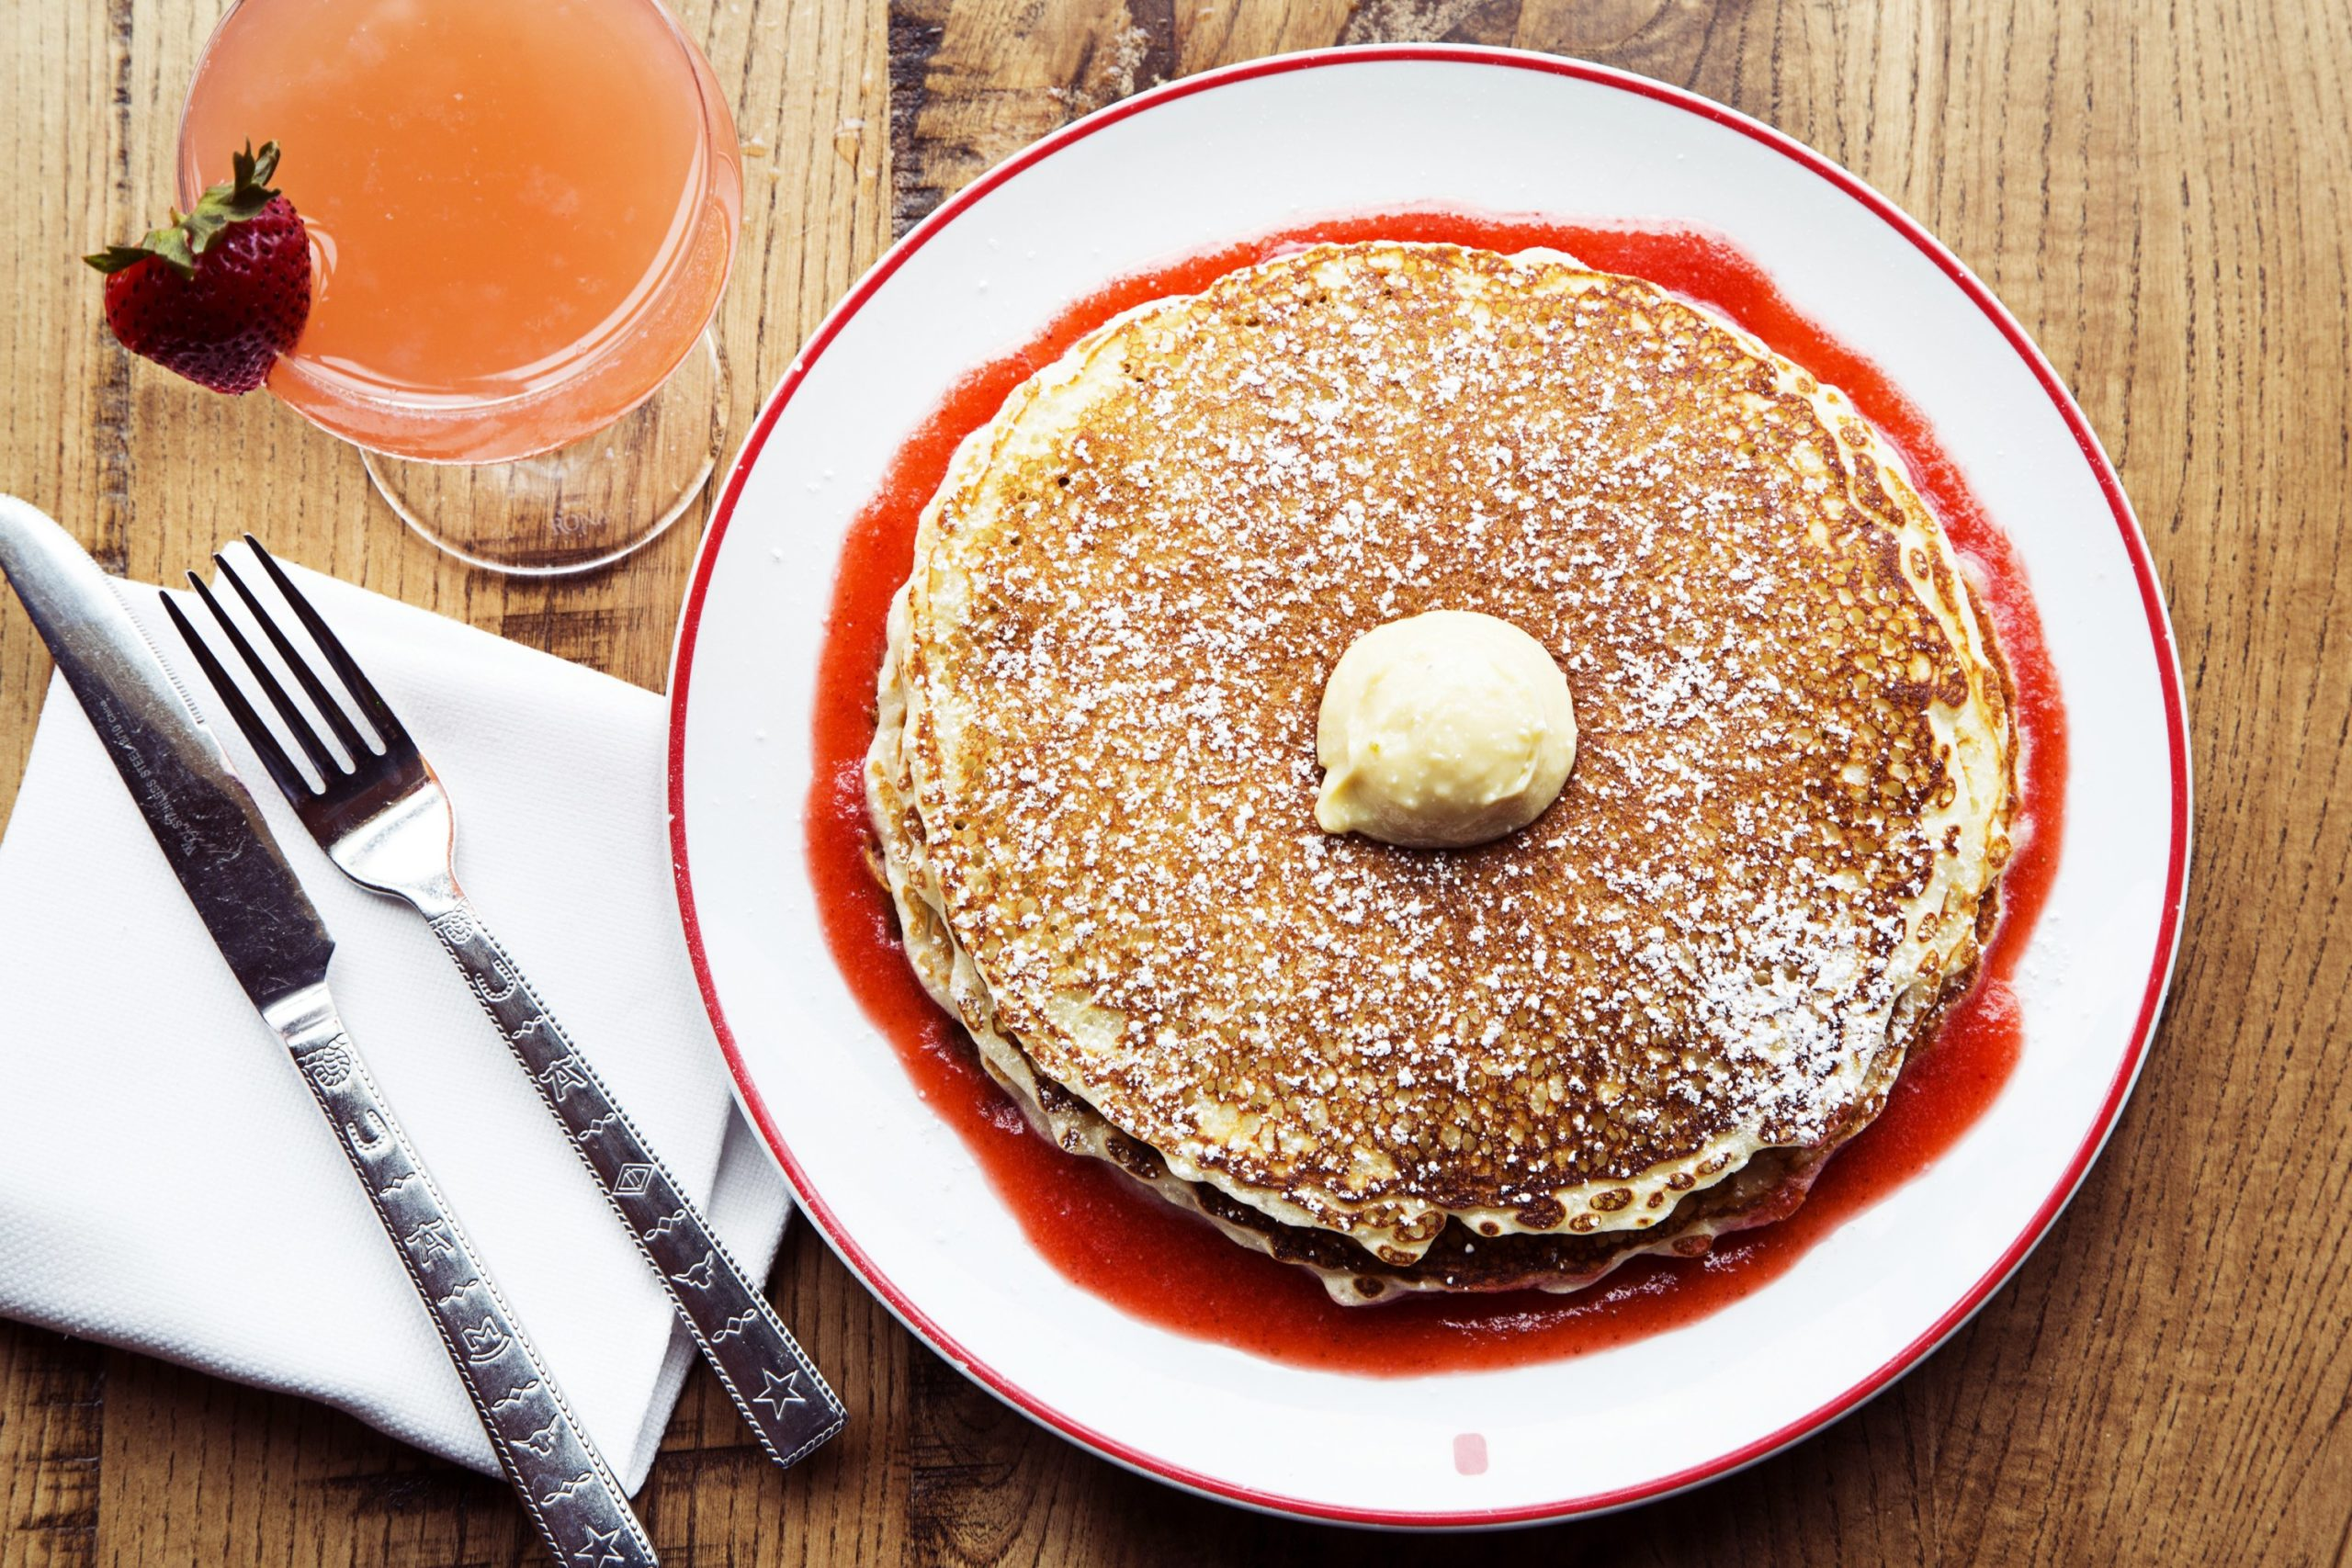 Pancakes at Founding Farmers. Photograph courtesy of Farmers Restaurant Group.